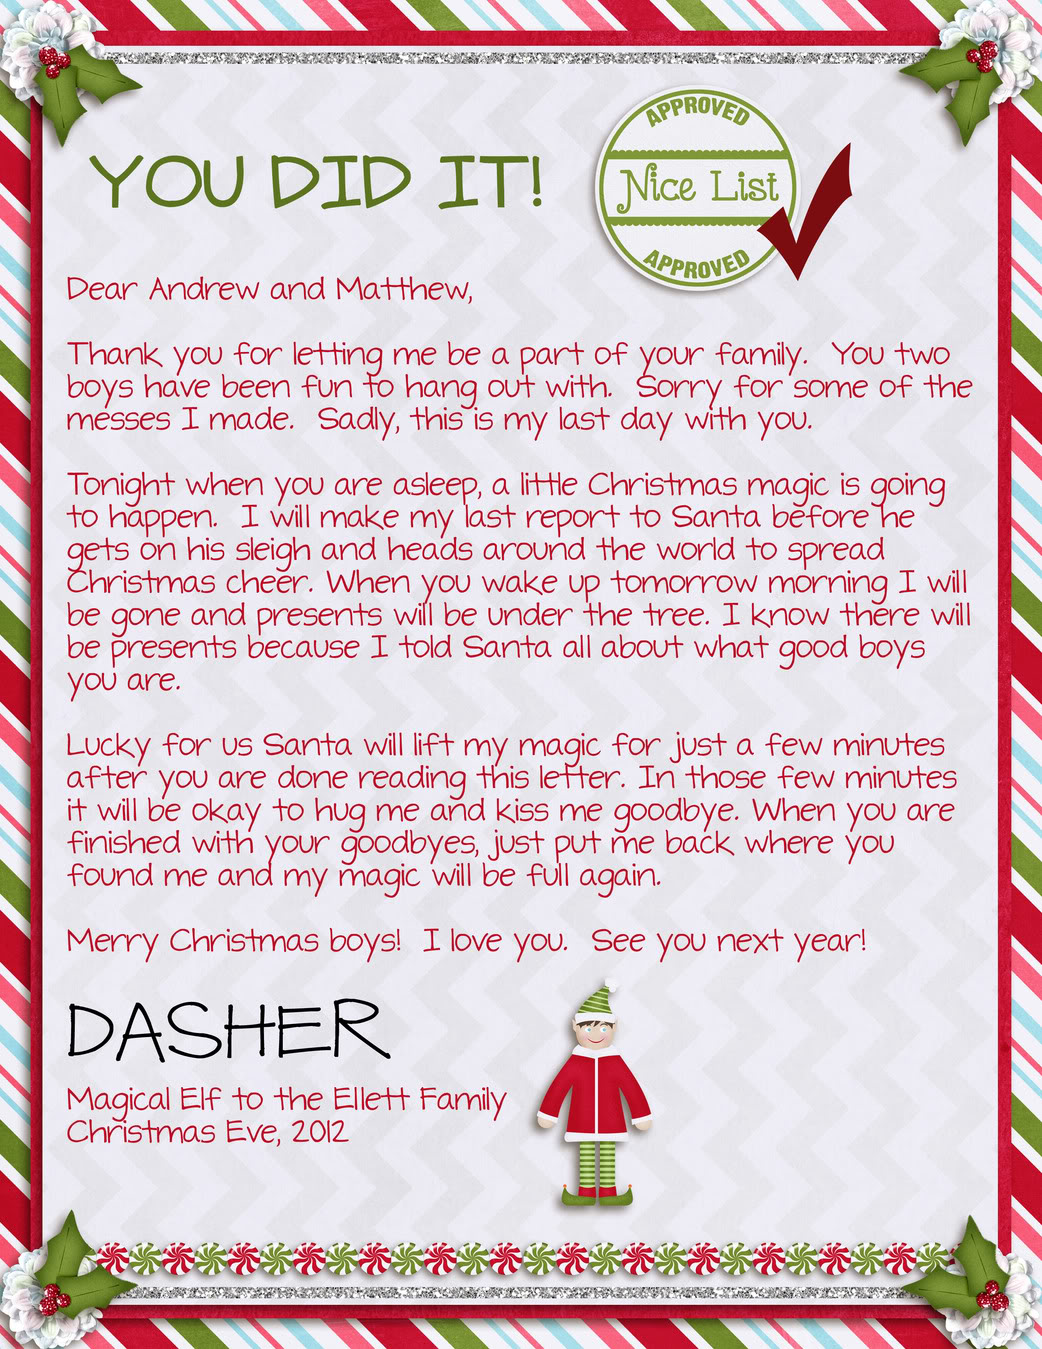 Goodbye Letter From Elf On The Shelf Template 15 Helpful Elf On The Shelf Goodbye Letters